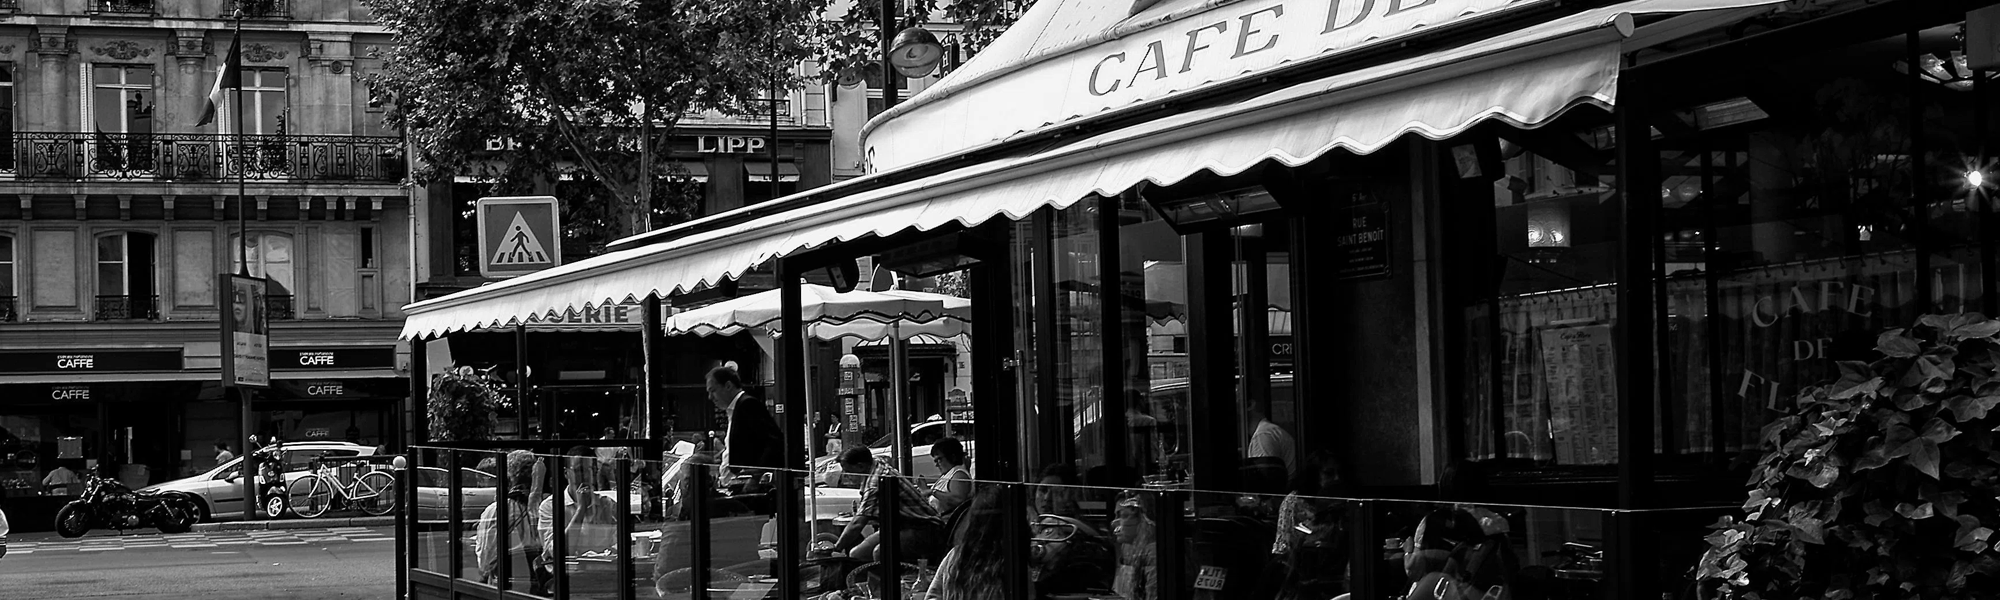 café saint germain des près paris